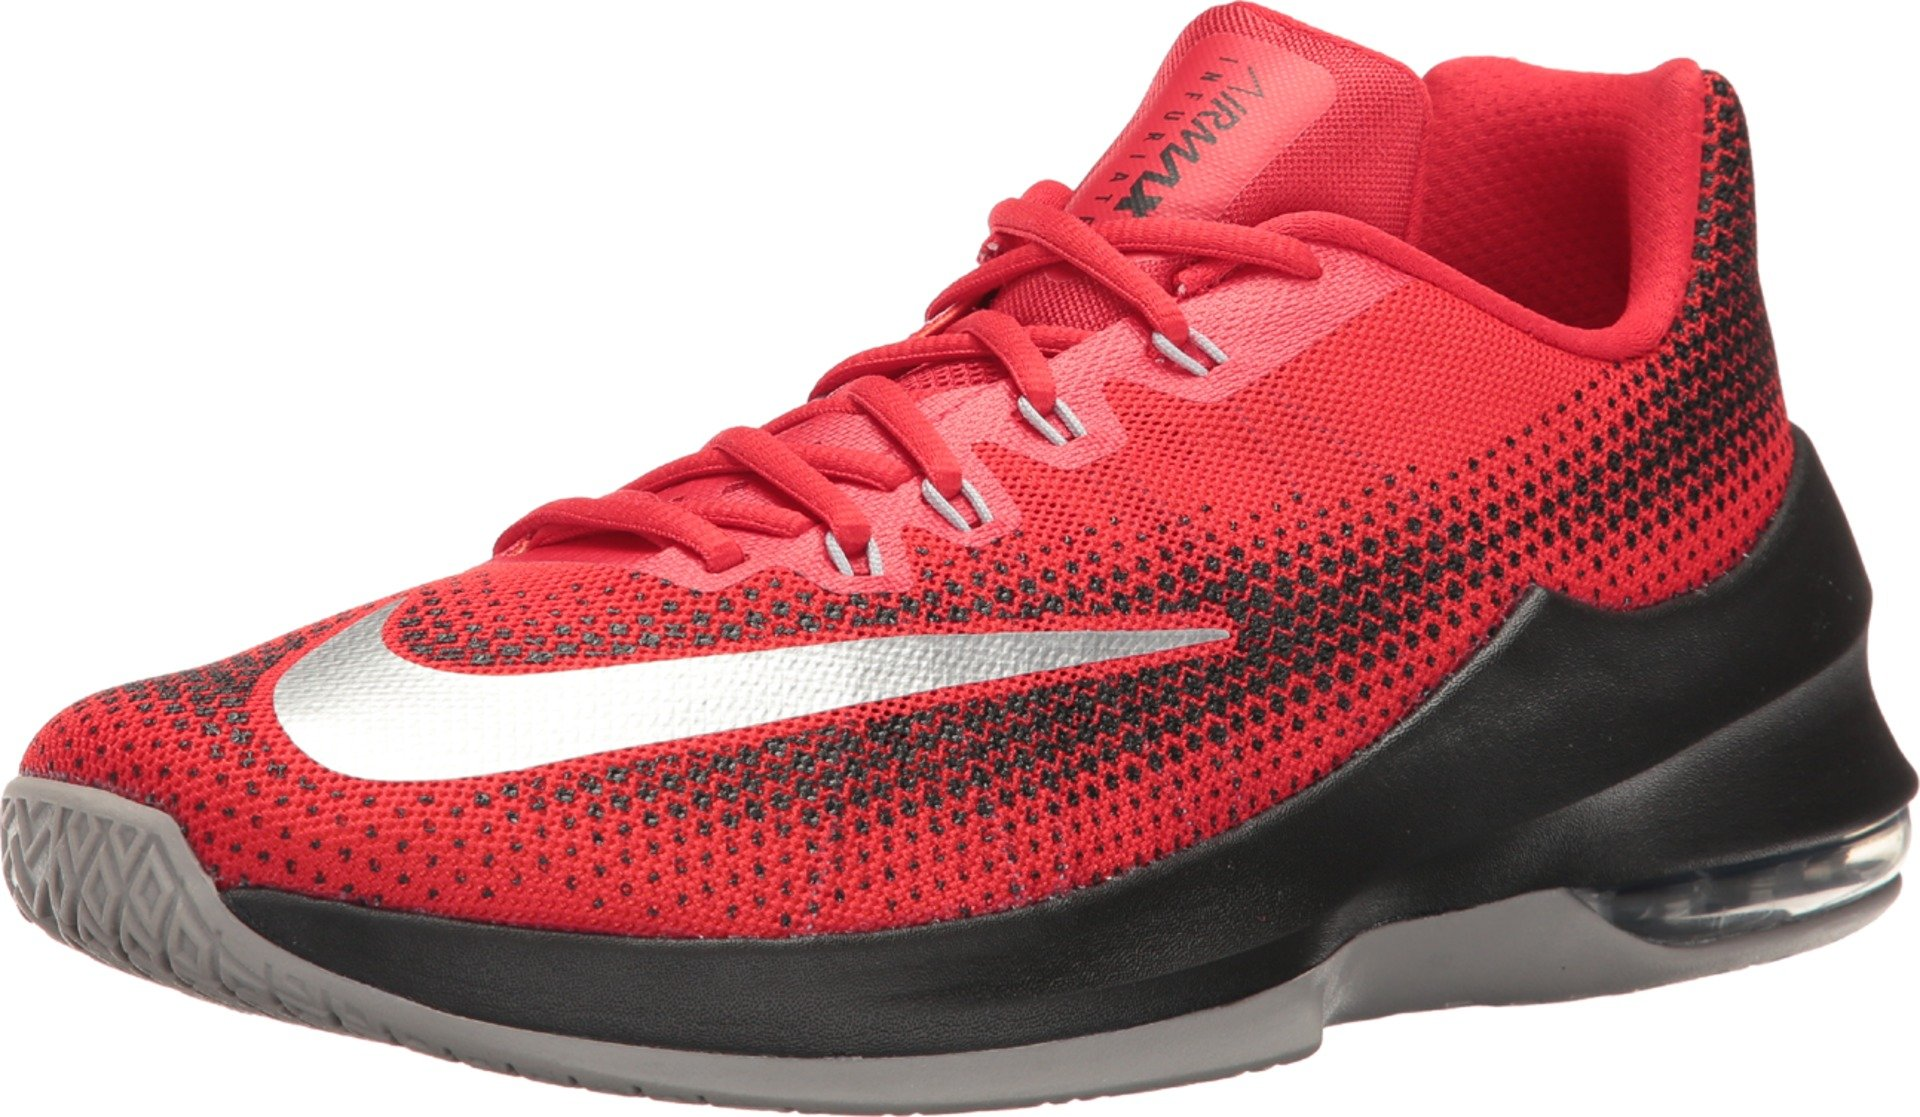 2b74168aef Galleon - Nike Mens Air Max Infuriate Low University Red/White/Black  Basketball Shoe 10.5 Men US